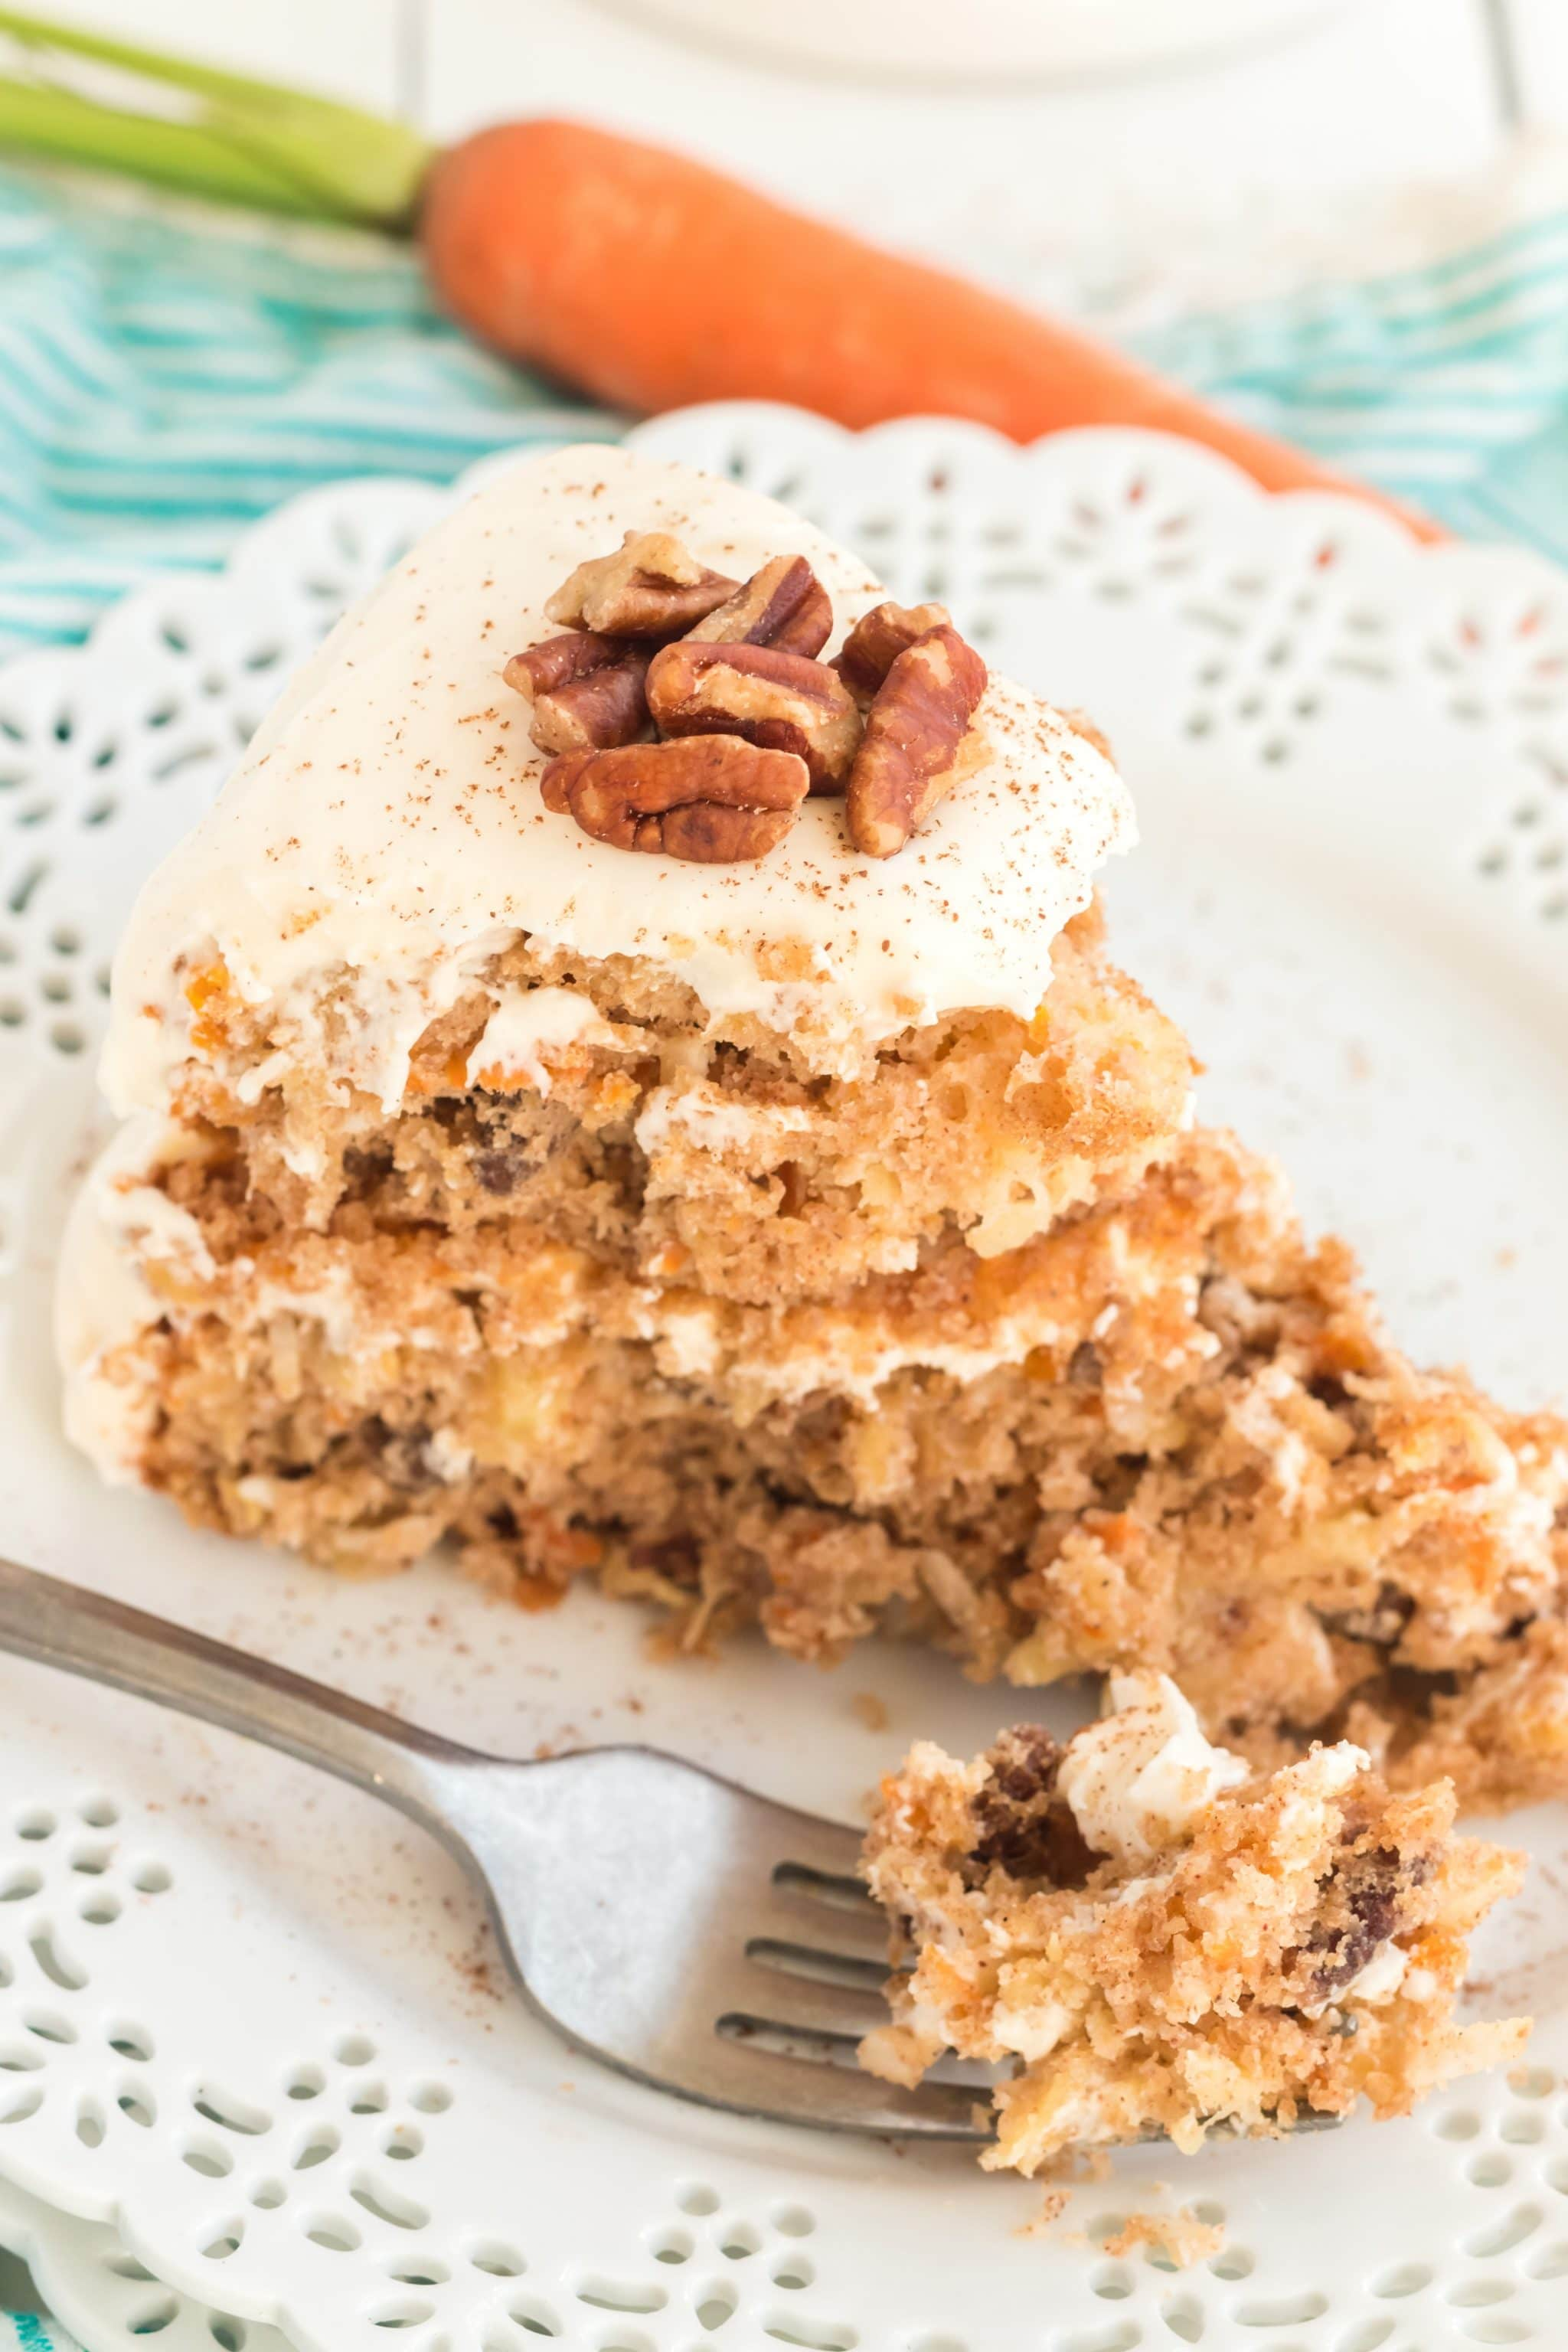 carrot cake made with spice cake mix